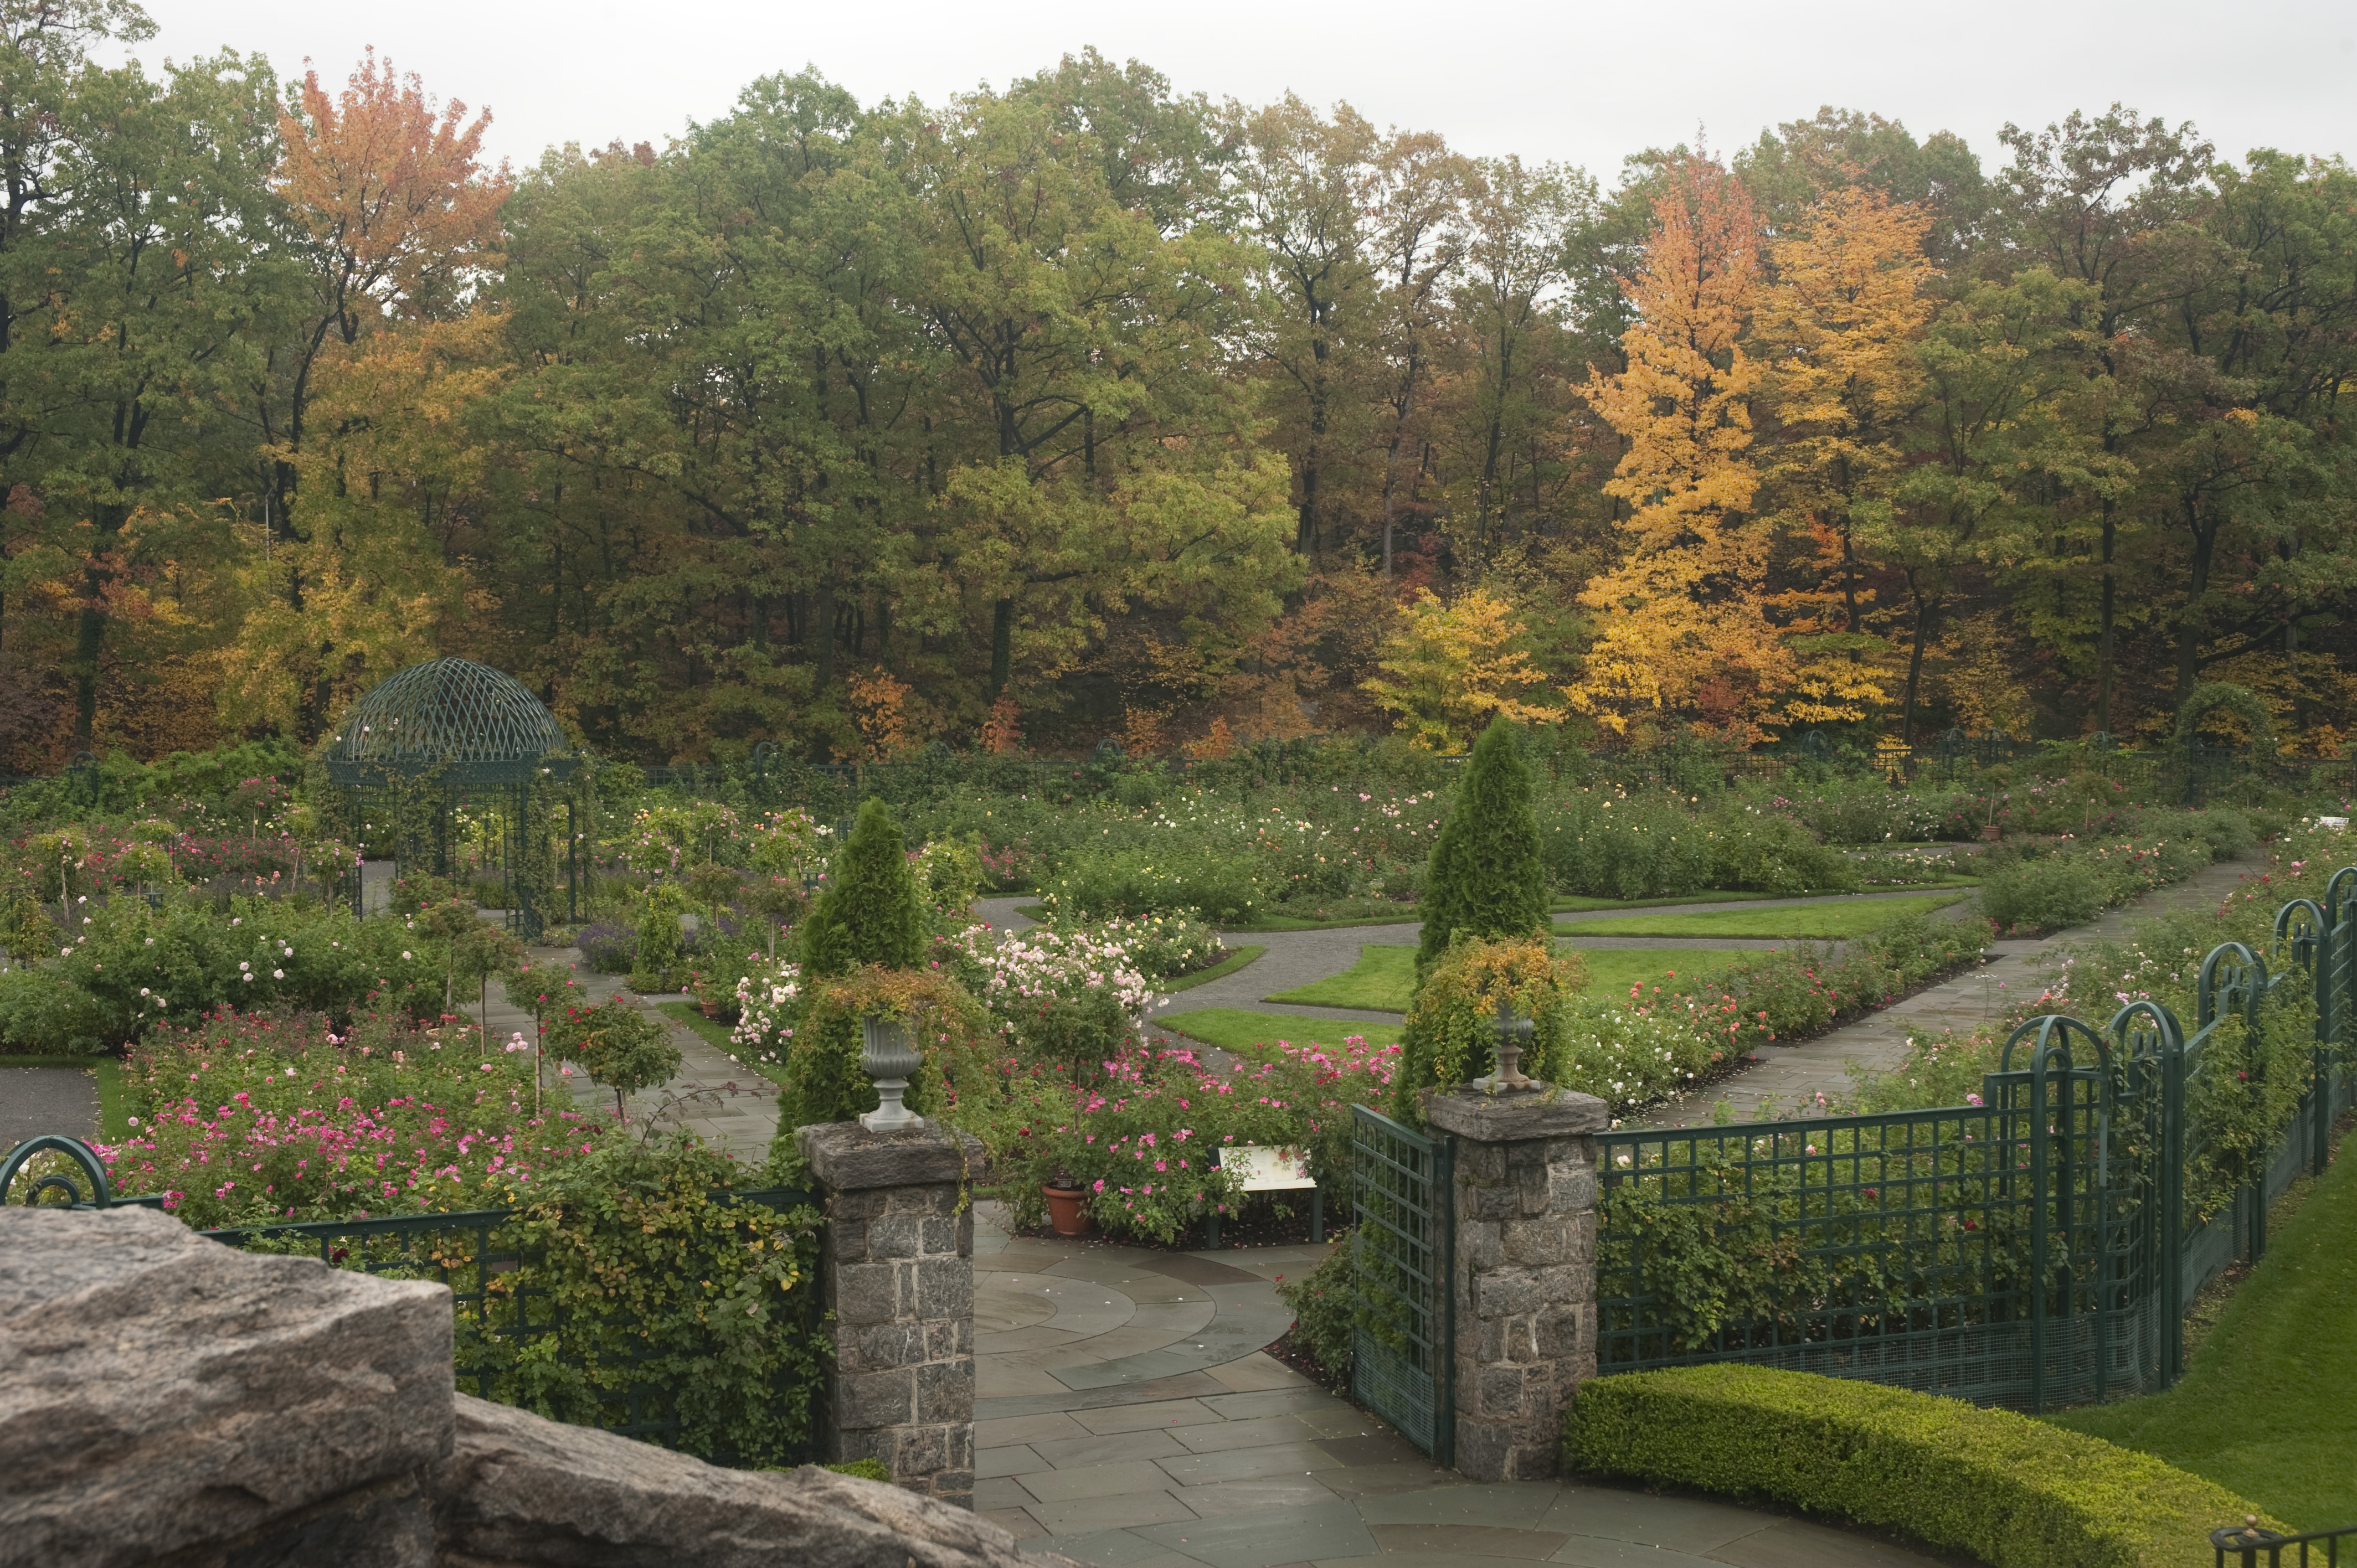 Plant Talk - Page 357 of 421 - Inside The New York Botanical Garden